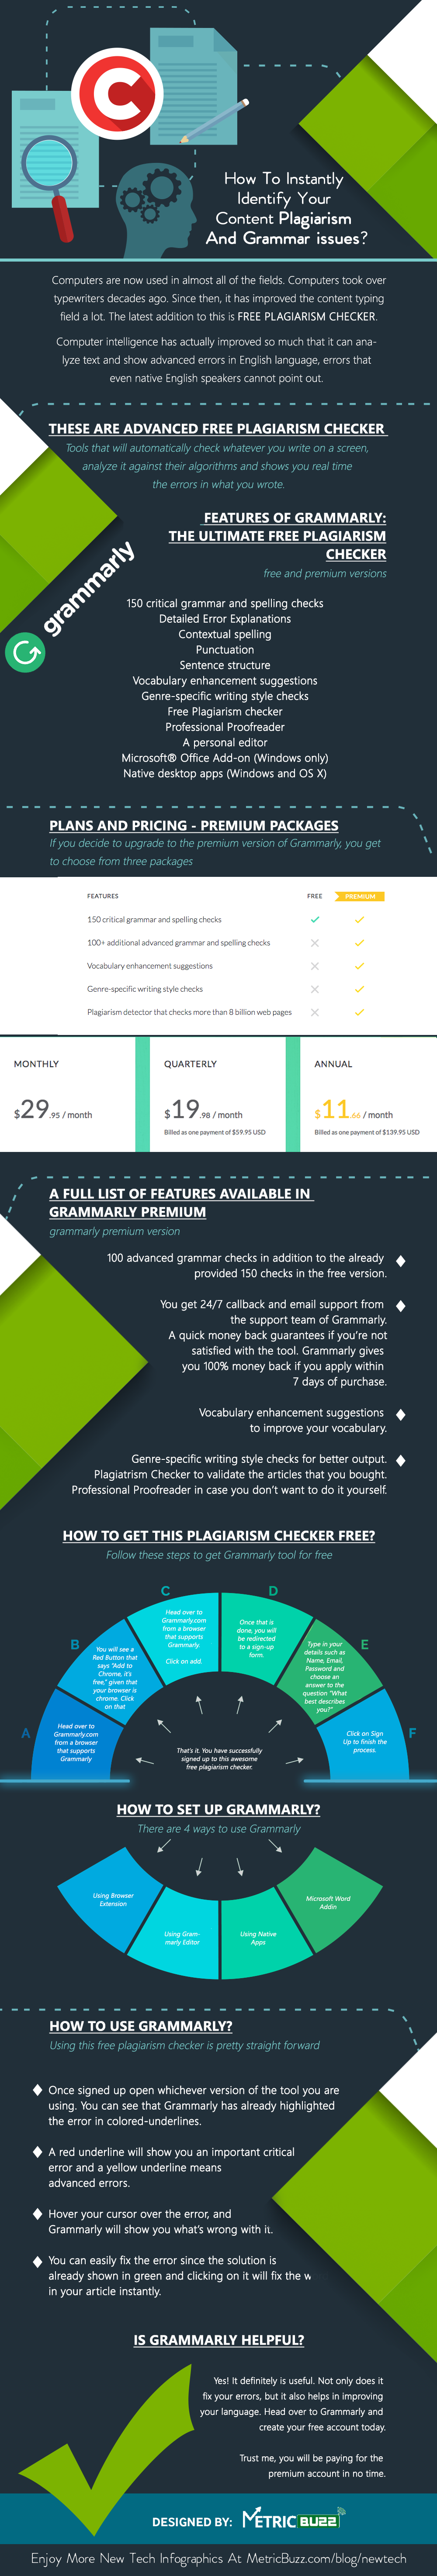 check my essay for plagiarism check if my essay plagiarized  best ideas about plagiarism checker check 17 best ideas about plagiarism checker check plagiarism grammar check